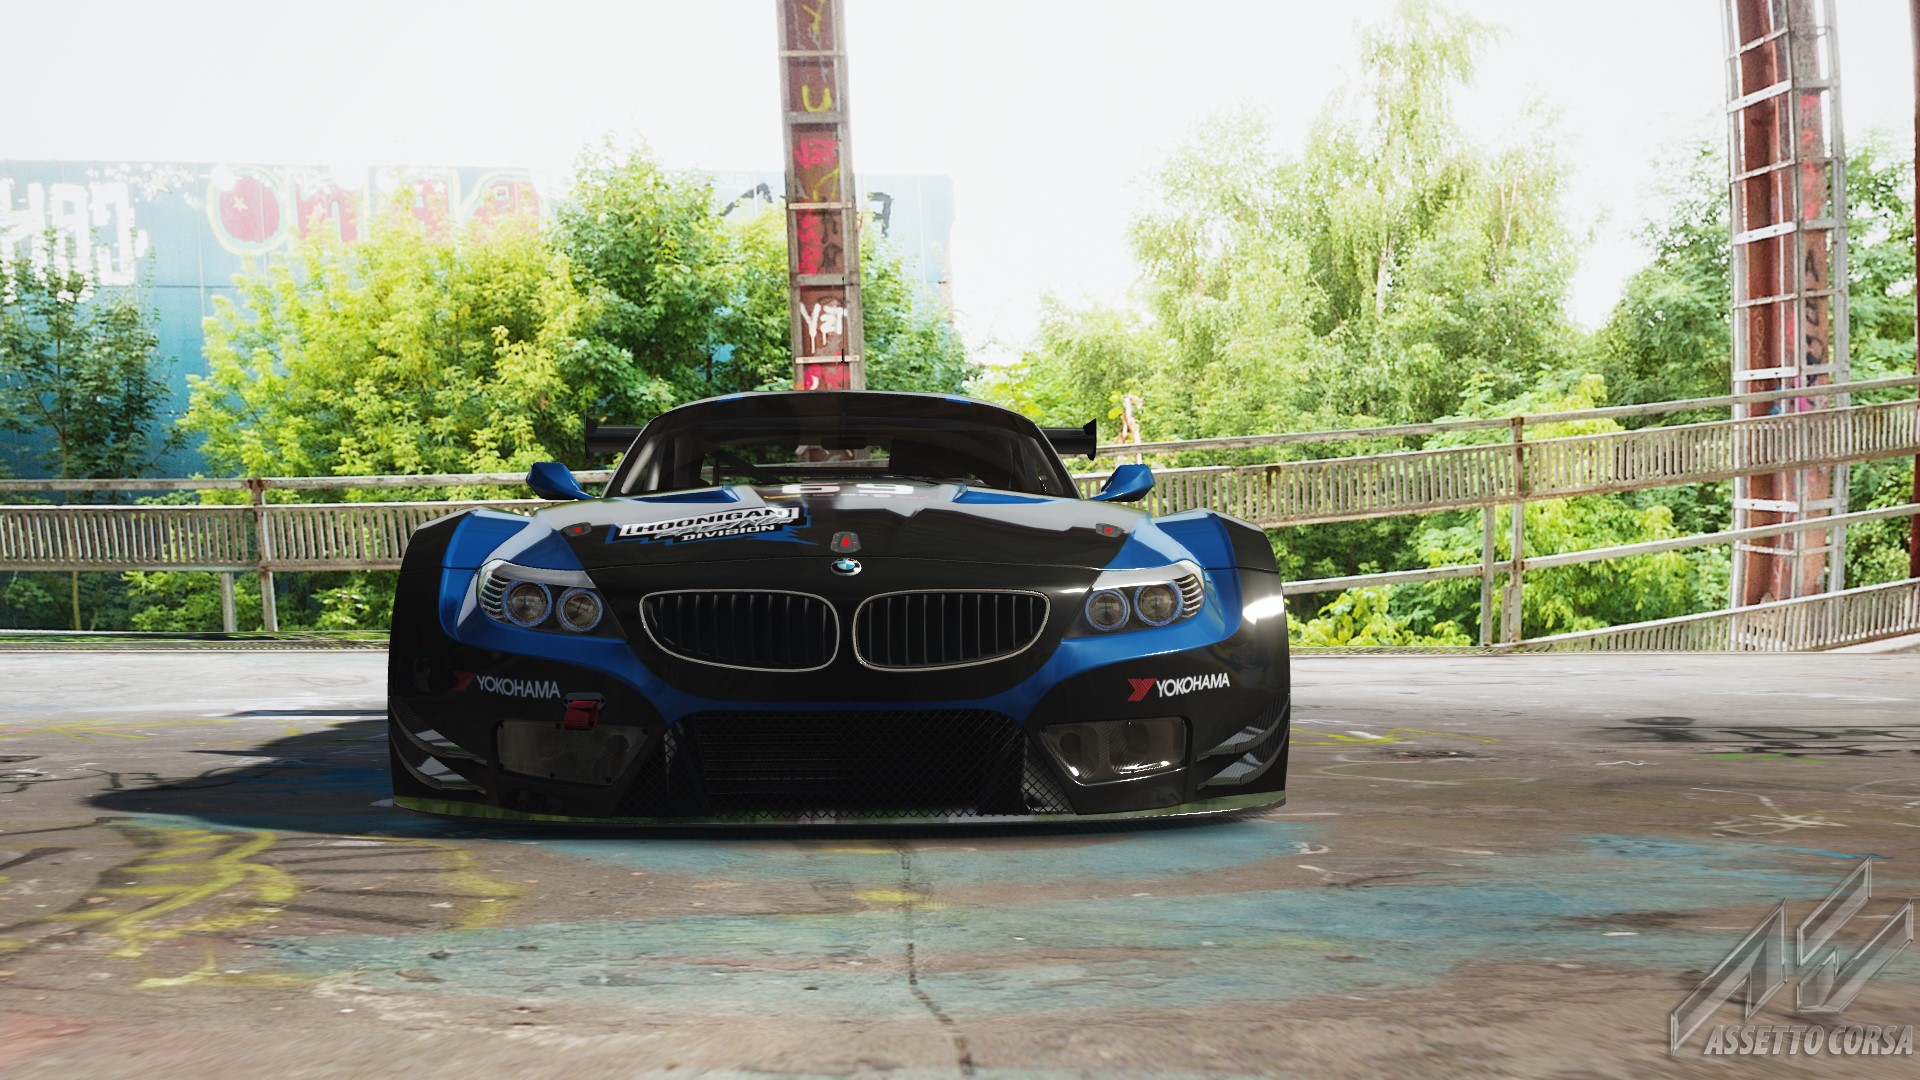 Showroom_bmw_z4_gt3_1-3-2017-0-9-25.jpg